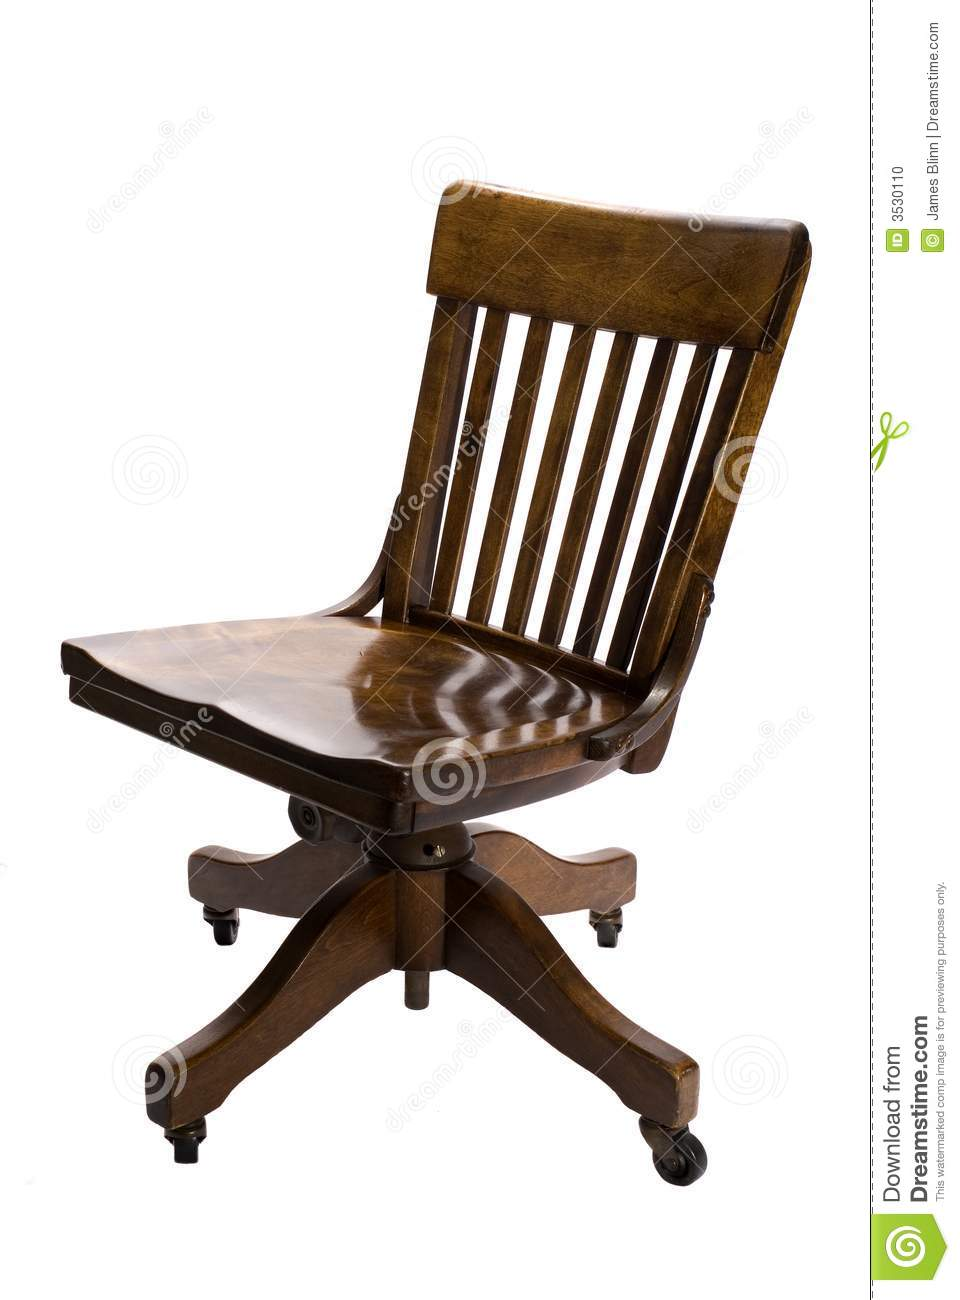 Antique Office Chair Stock Photo Image 3530110